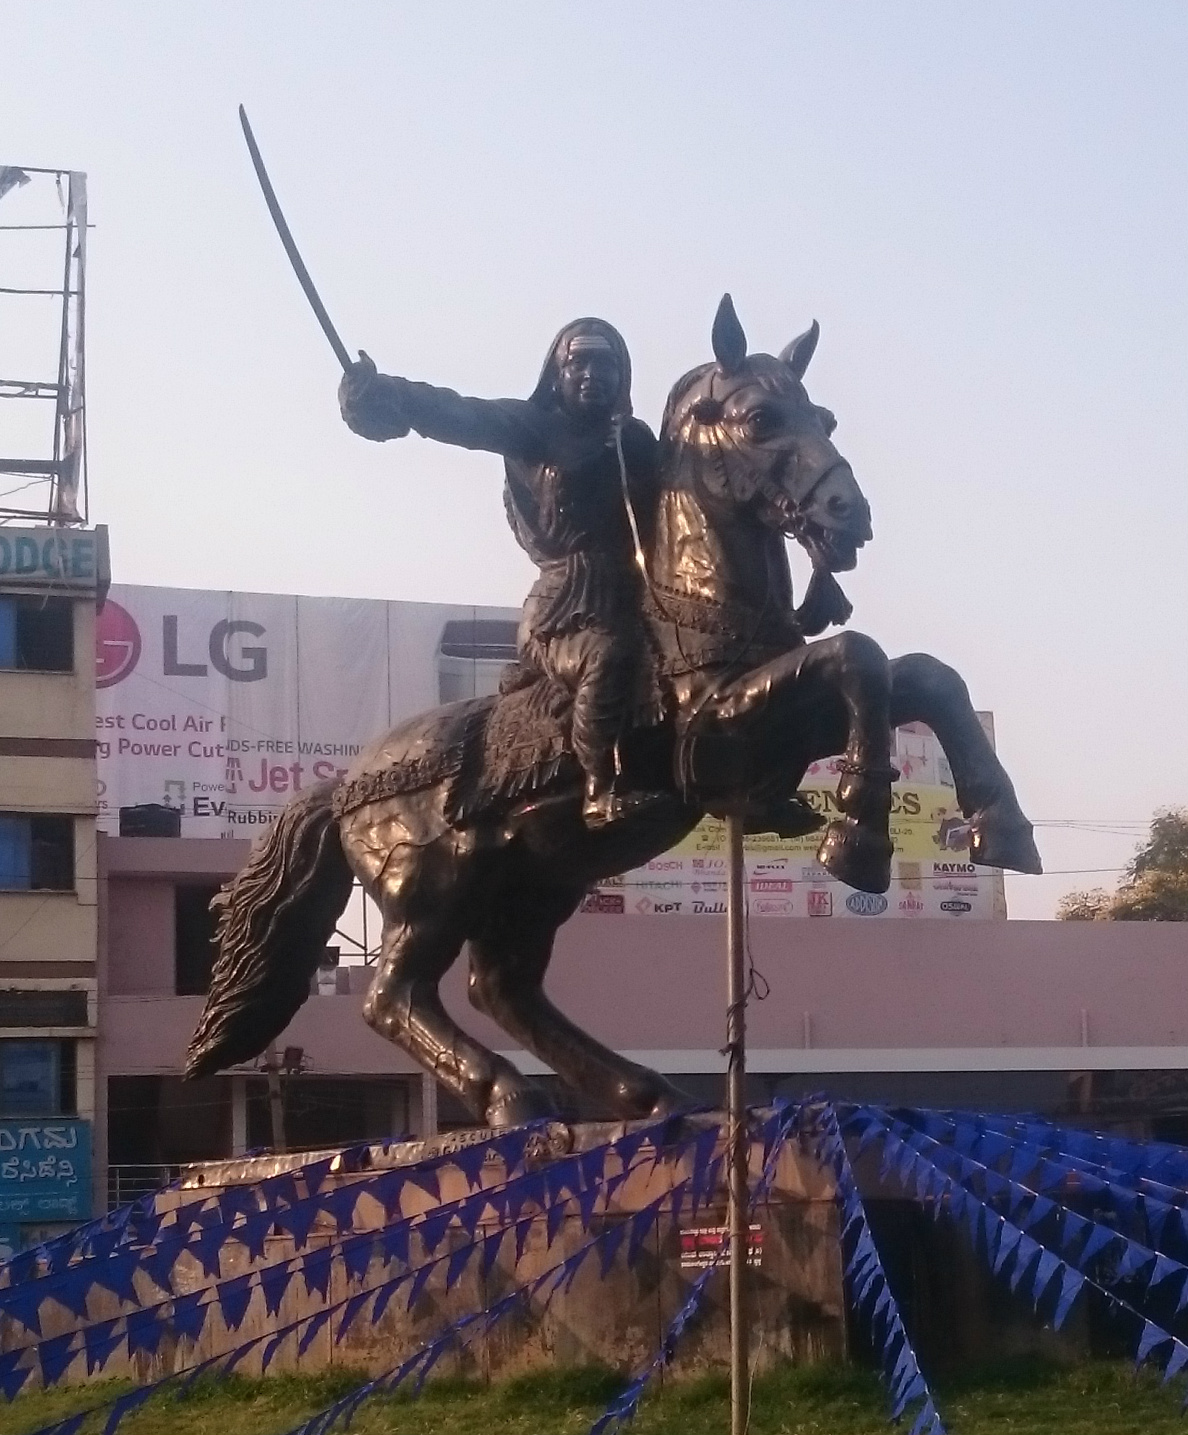 Statue of Kittur Chennamma, ?, Ganesh and Prakash Patkar, Hubli, Karnataka, India